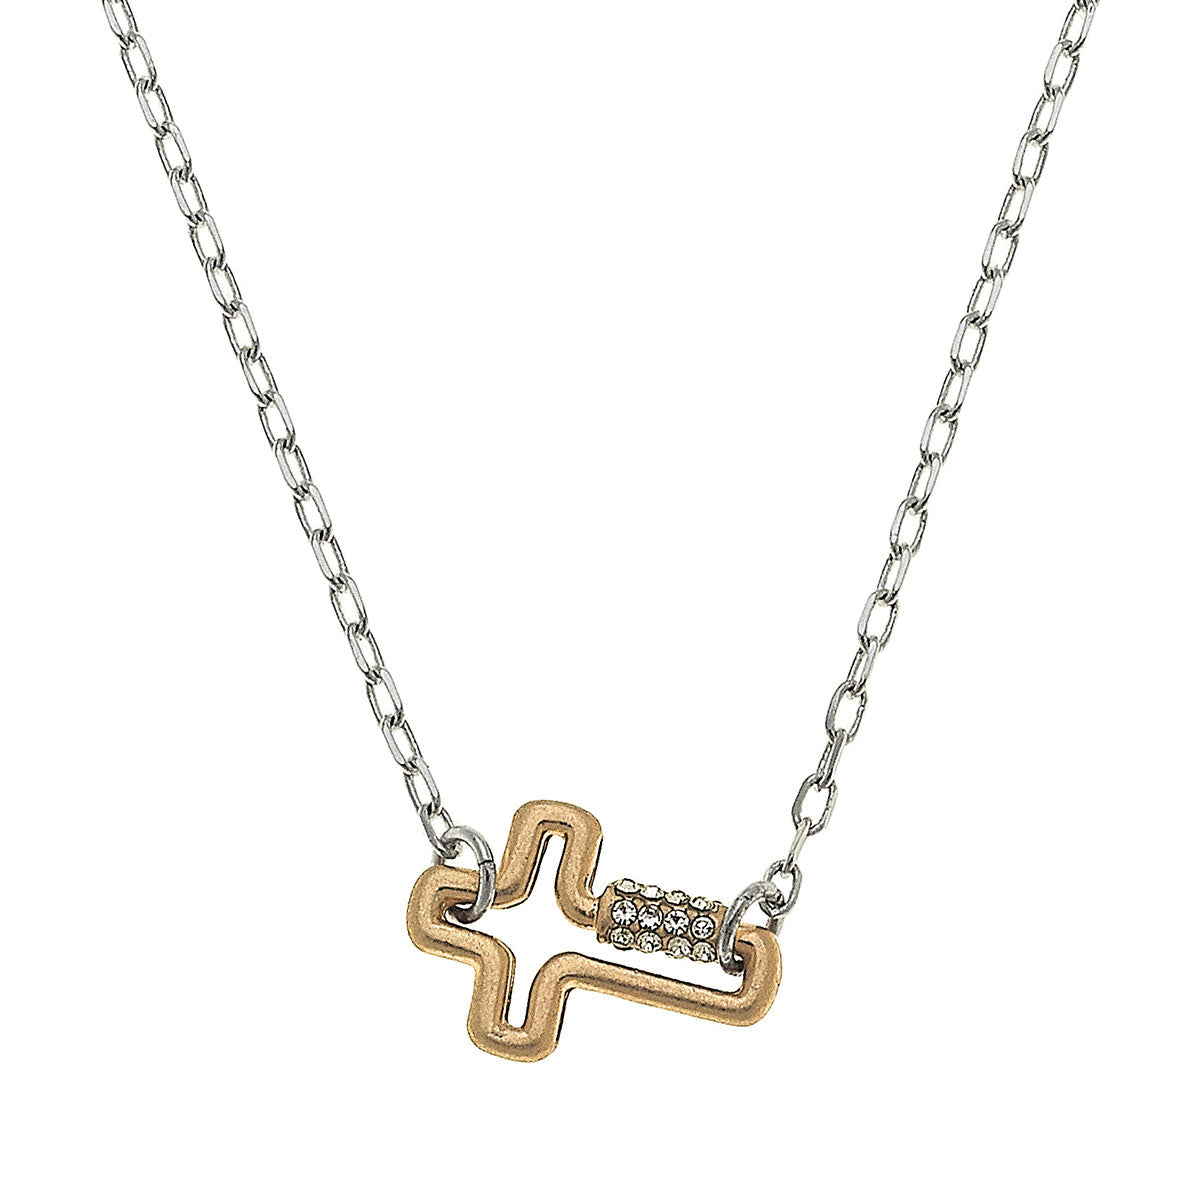 Leela Mini Cross Screw Lock Necklace in Two-Tone